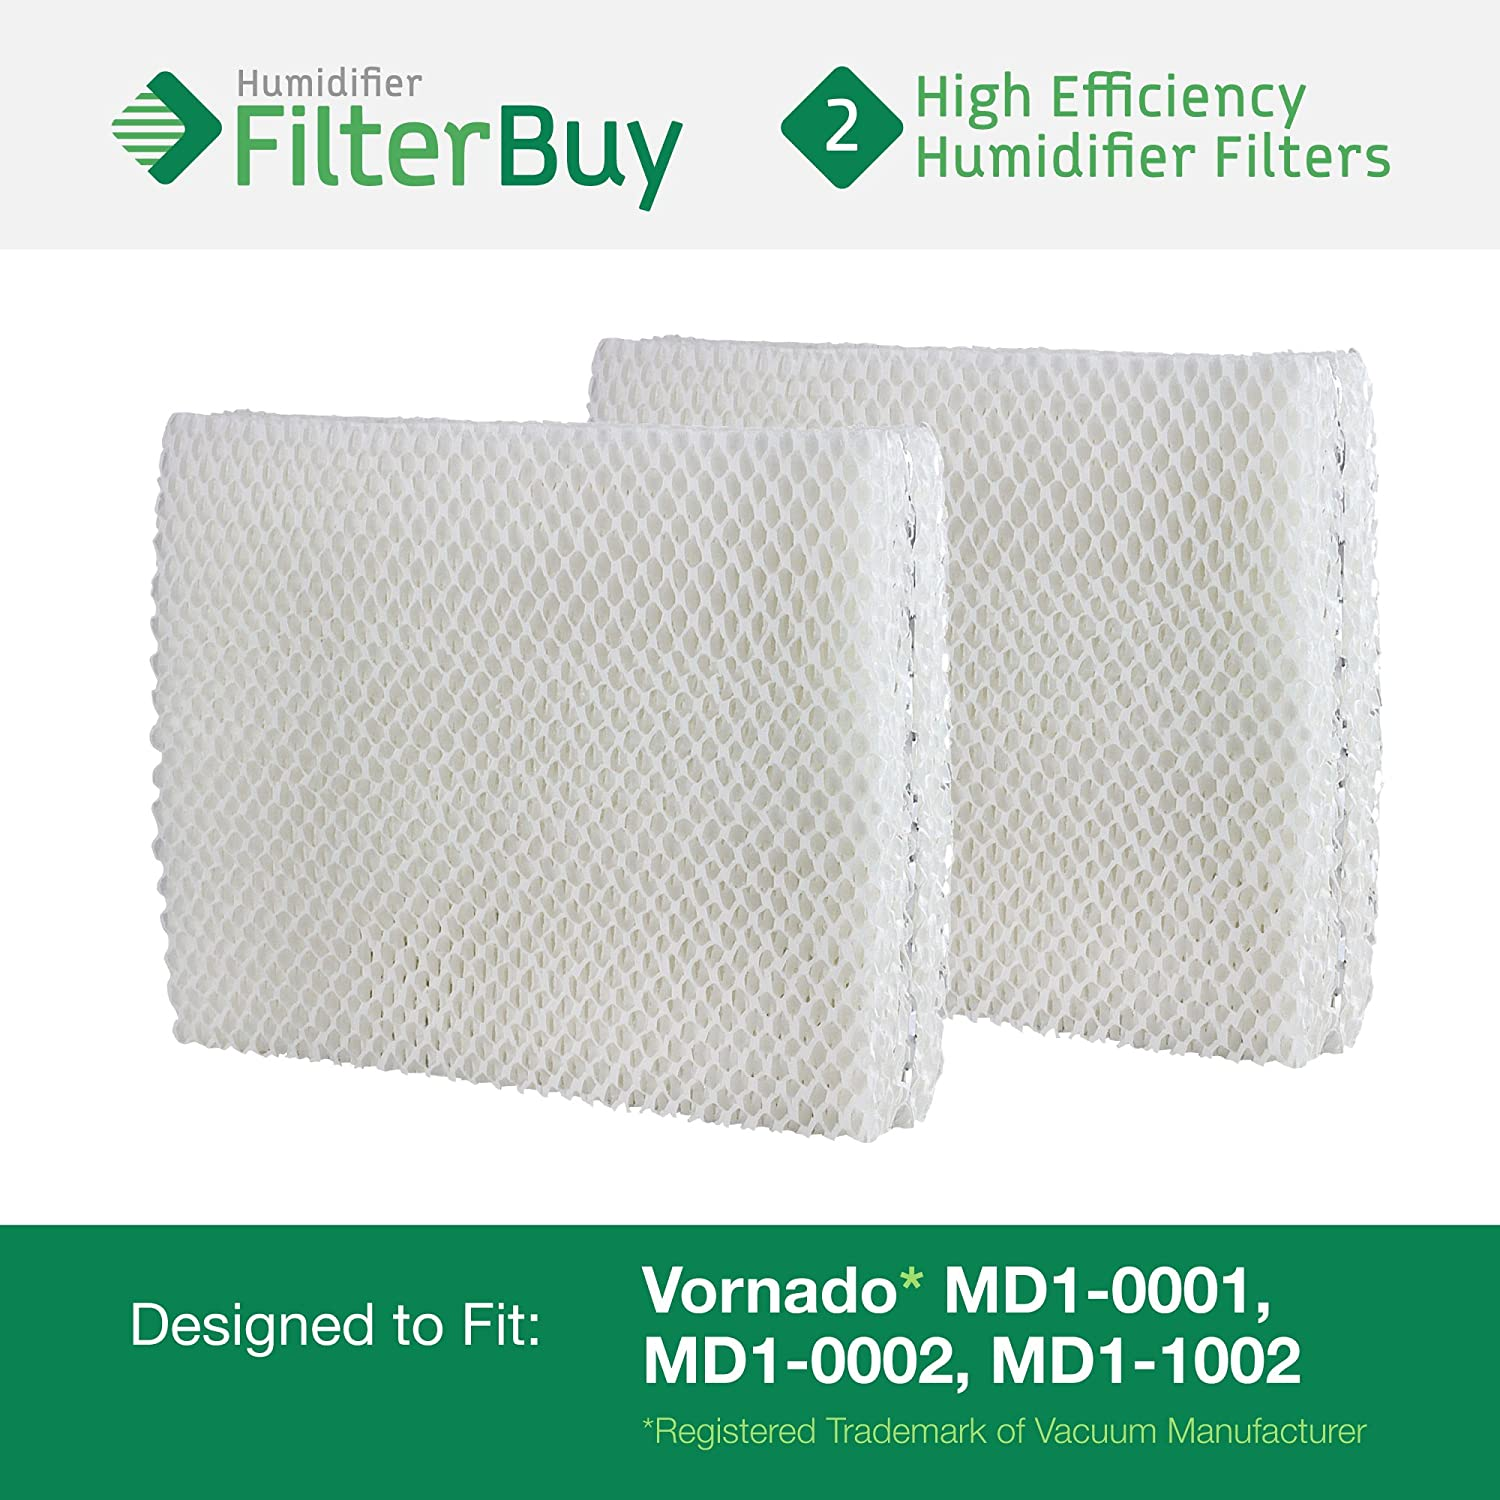 Vornado MD1-0001, MD1-0002, MD1-1002 Humidifier Wick Filter. Designed by FilterBuy to fit all Vornado Evaporative Humidifiers. Pack of 2 Filters